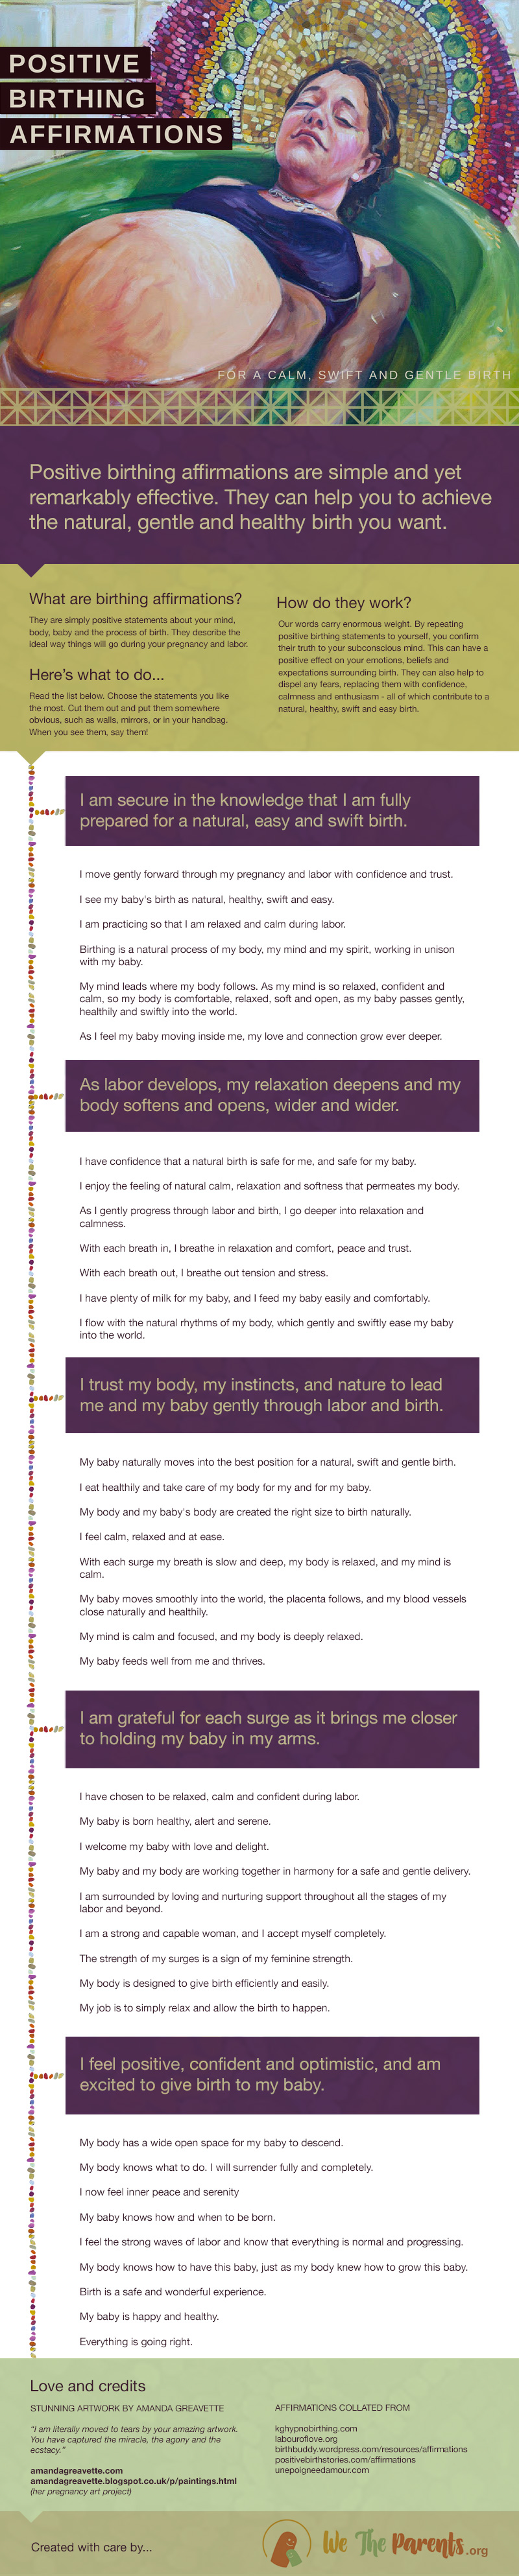 Positive Birthing Affirmations (Printable Poster)